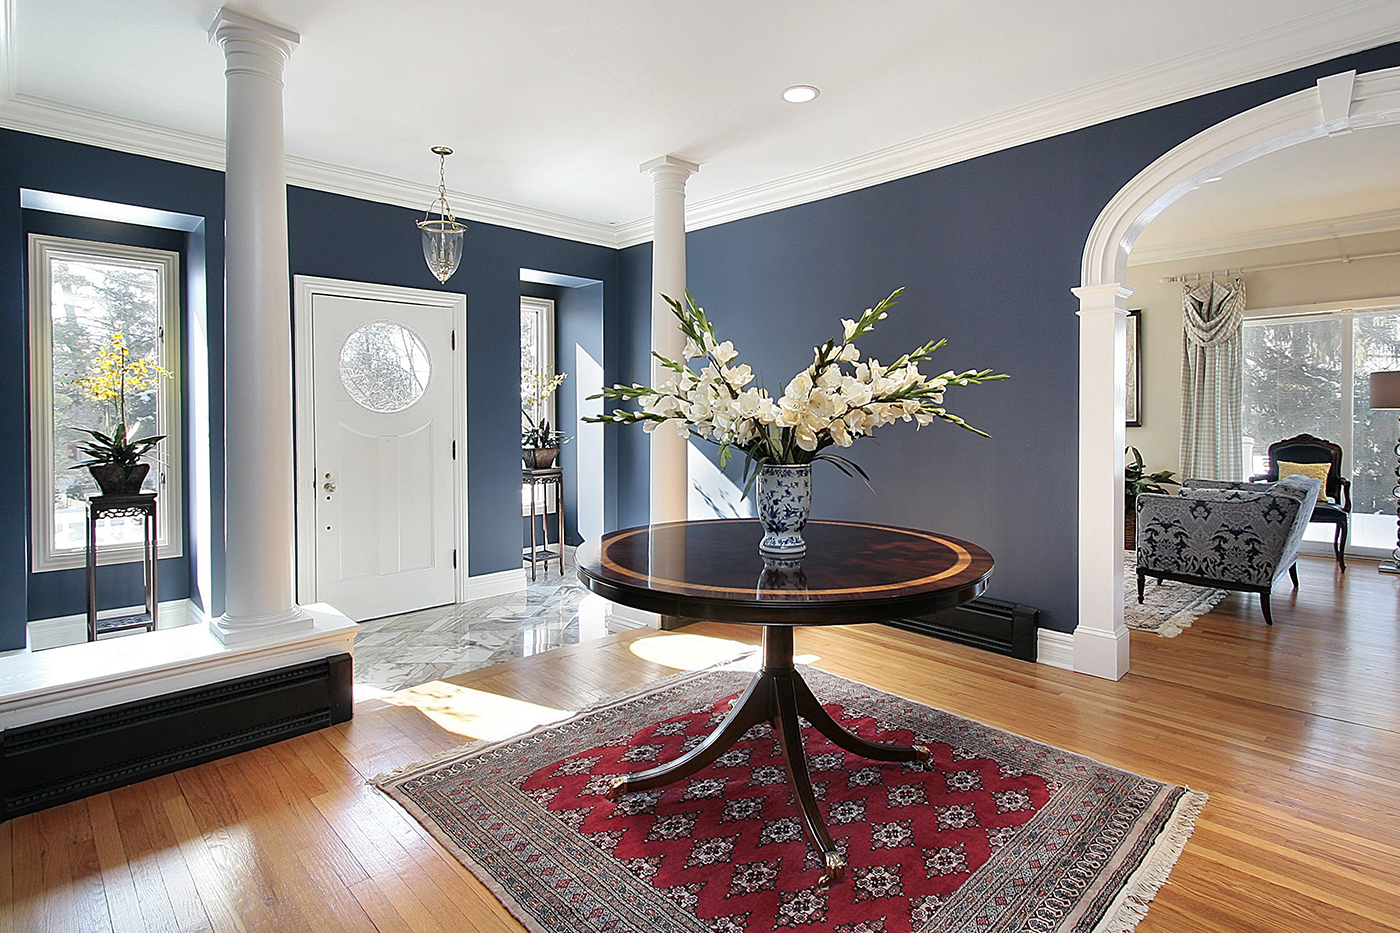 Fantastic Foyer Ideas To Make The Perfect First Impression: 5 Tips To Enhance Your Home's Foyer